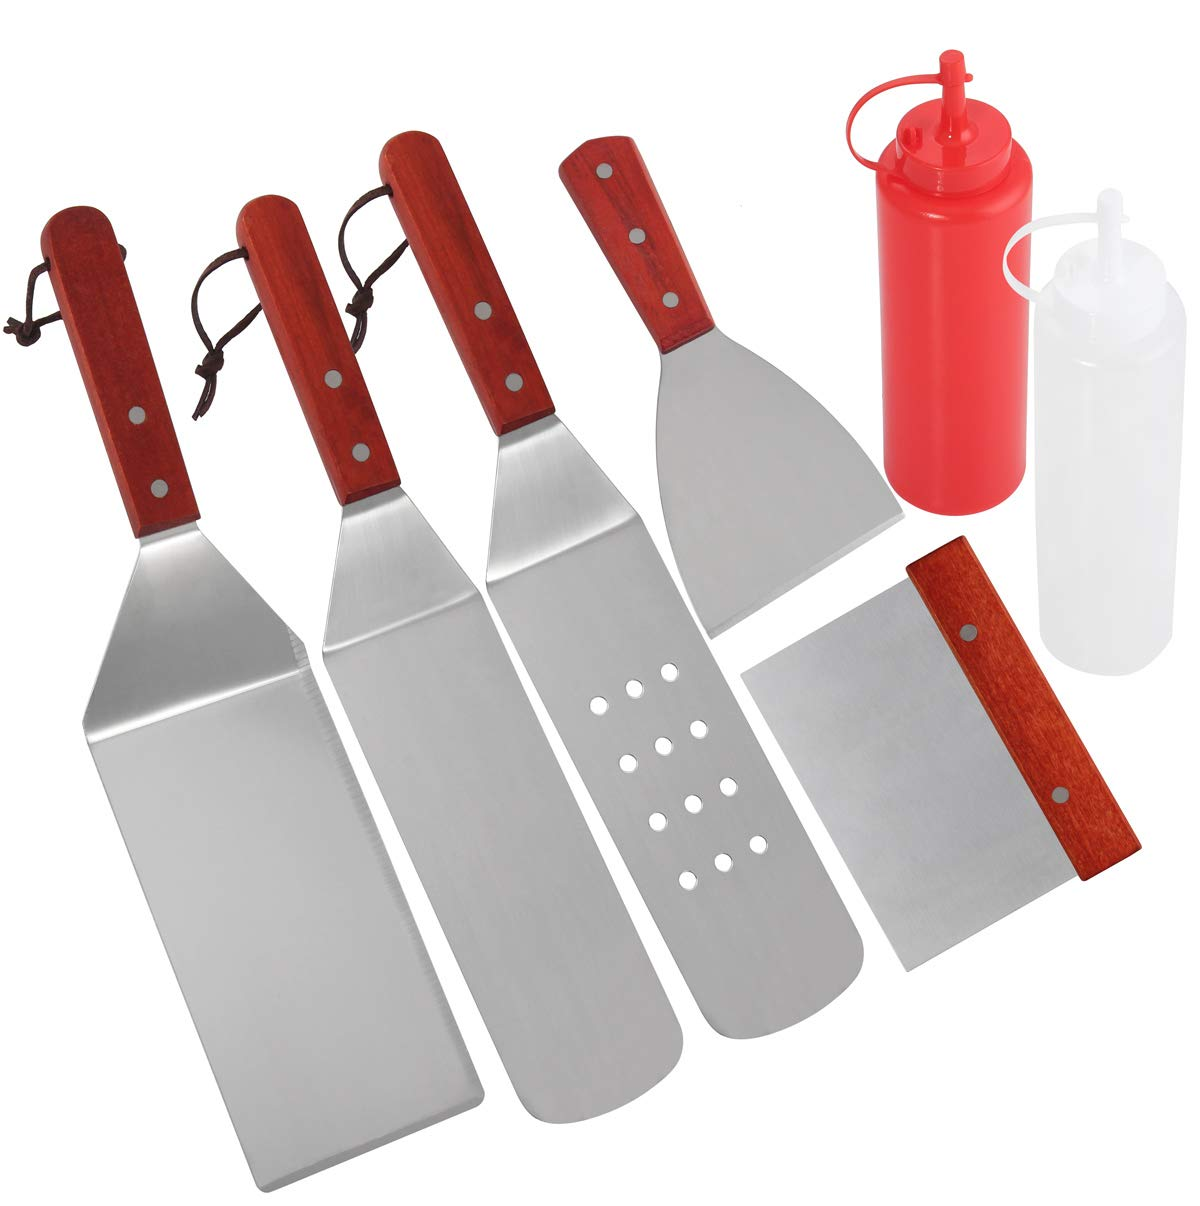 POLIGO 7pcs Restaurant Grade Griddle Accessories Kit in Packing Box - Heavy Duty Stainless Steel Griddle Tool Set with Riveted Wooden Handle - Great for Flat Top Cooking Camping Tailgating Grill